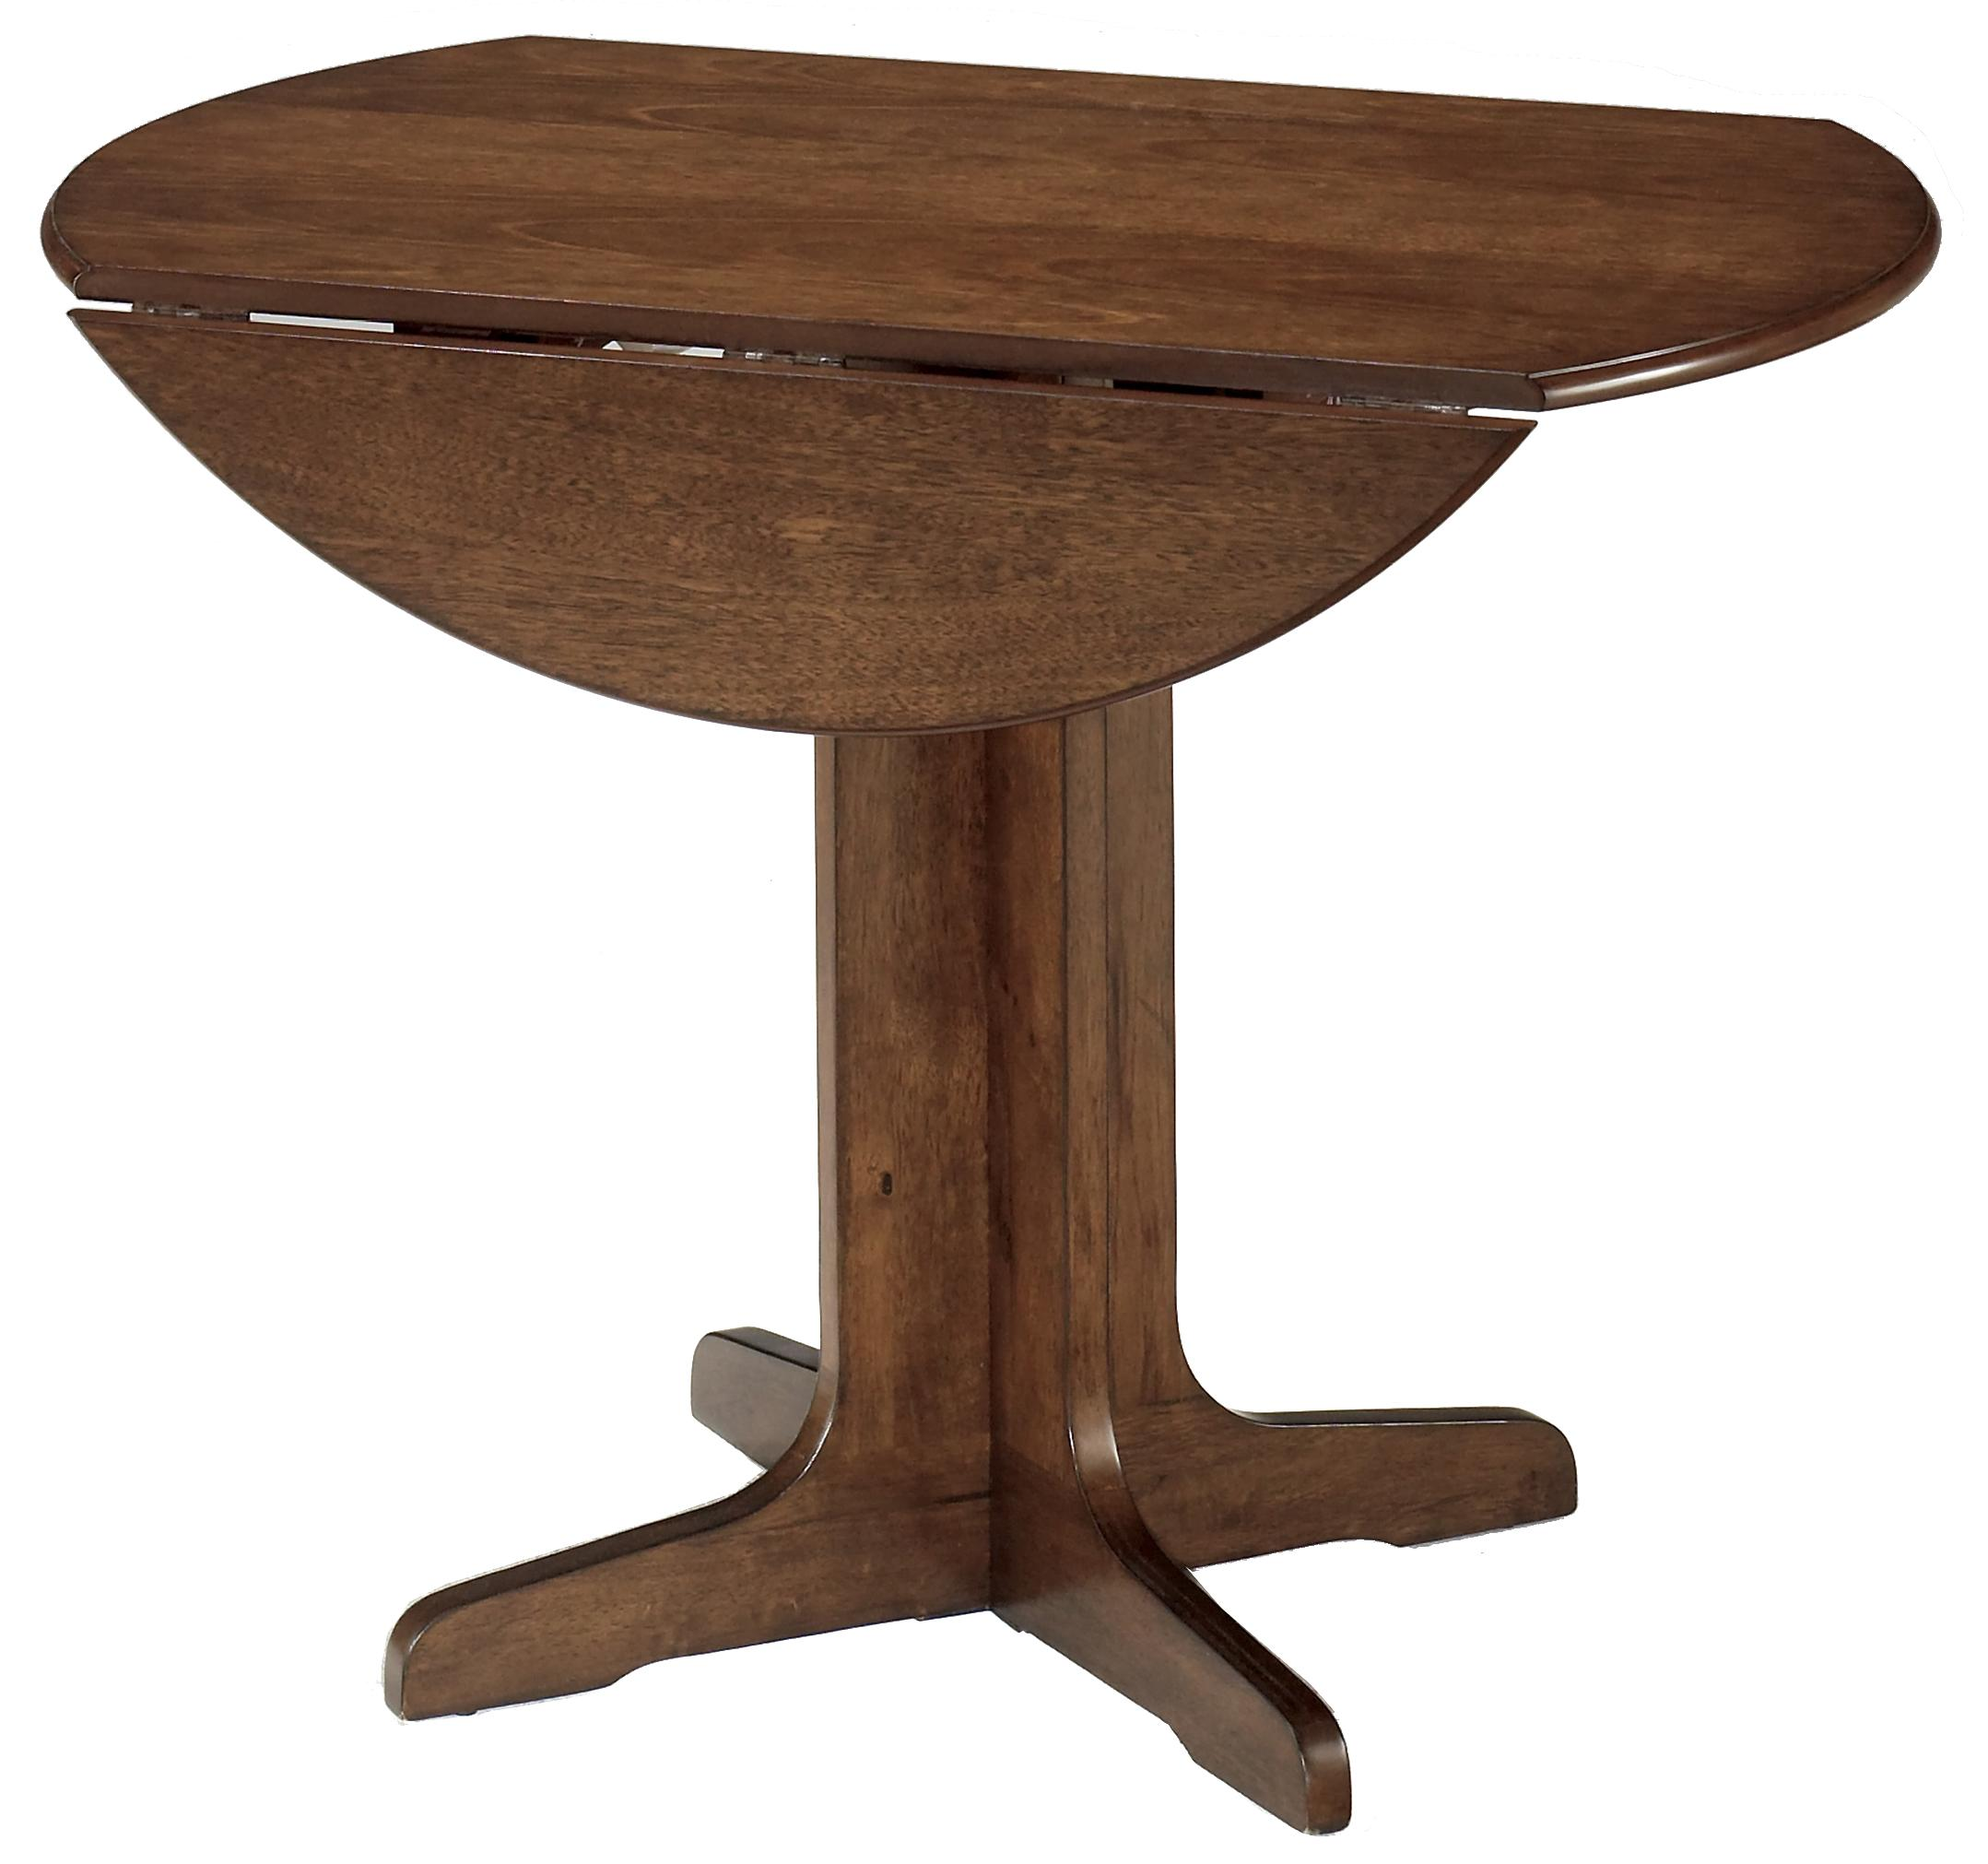 Round Kitchen Table With Leaf: Round Drop Leaf Table By Signature Design By Ashley